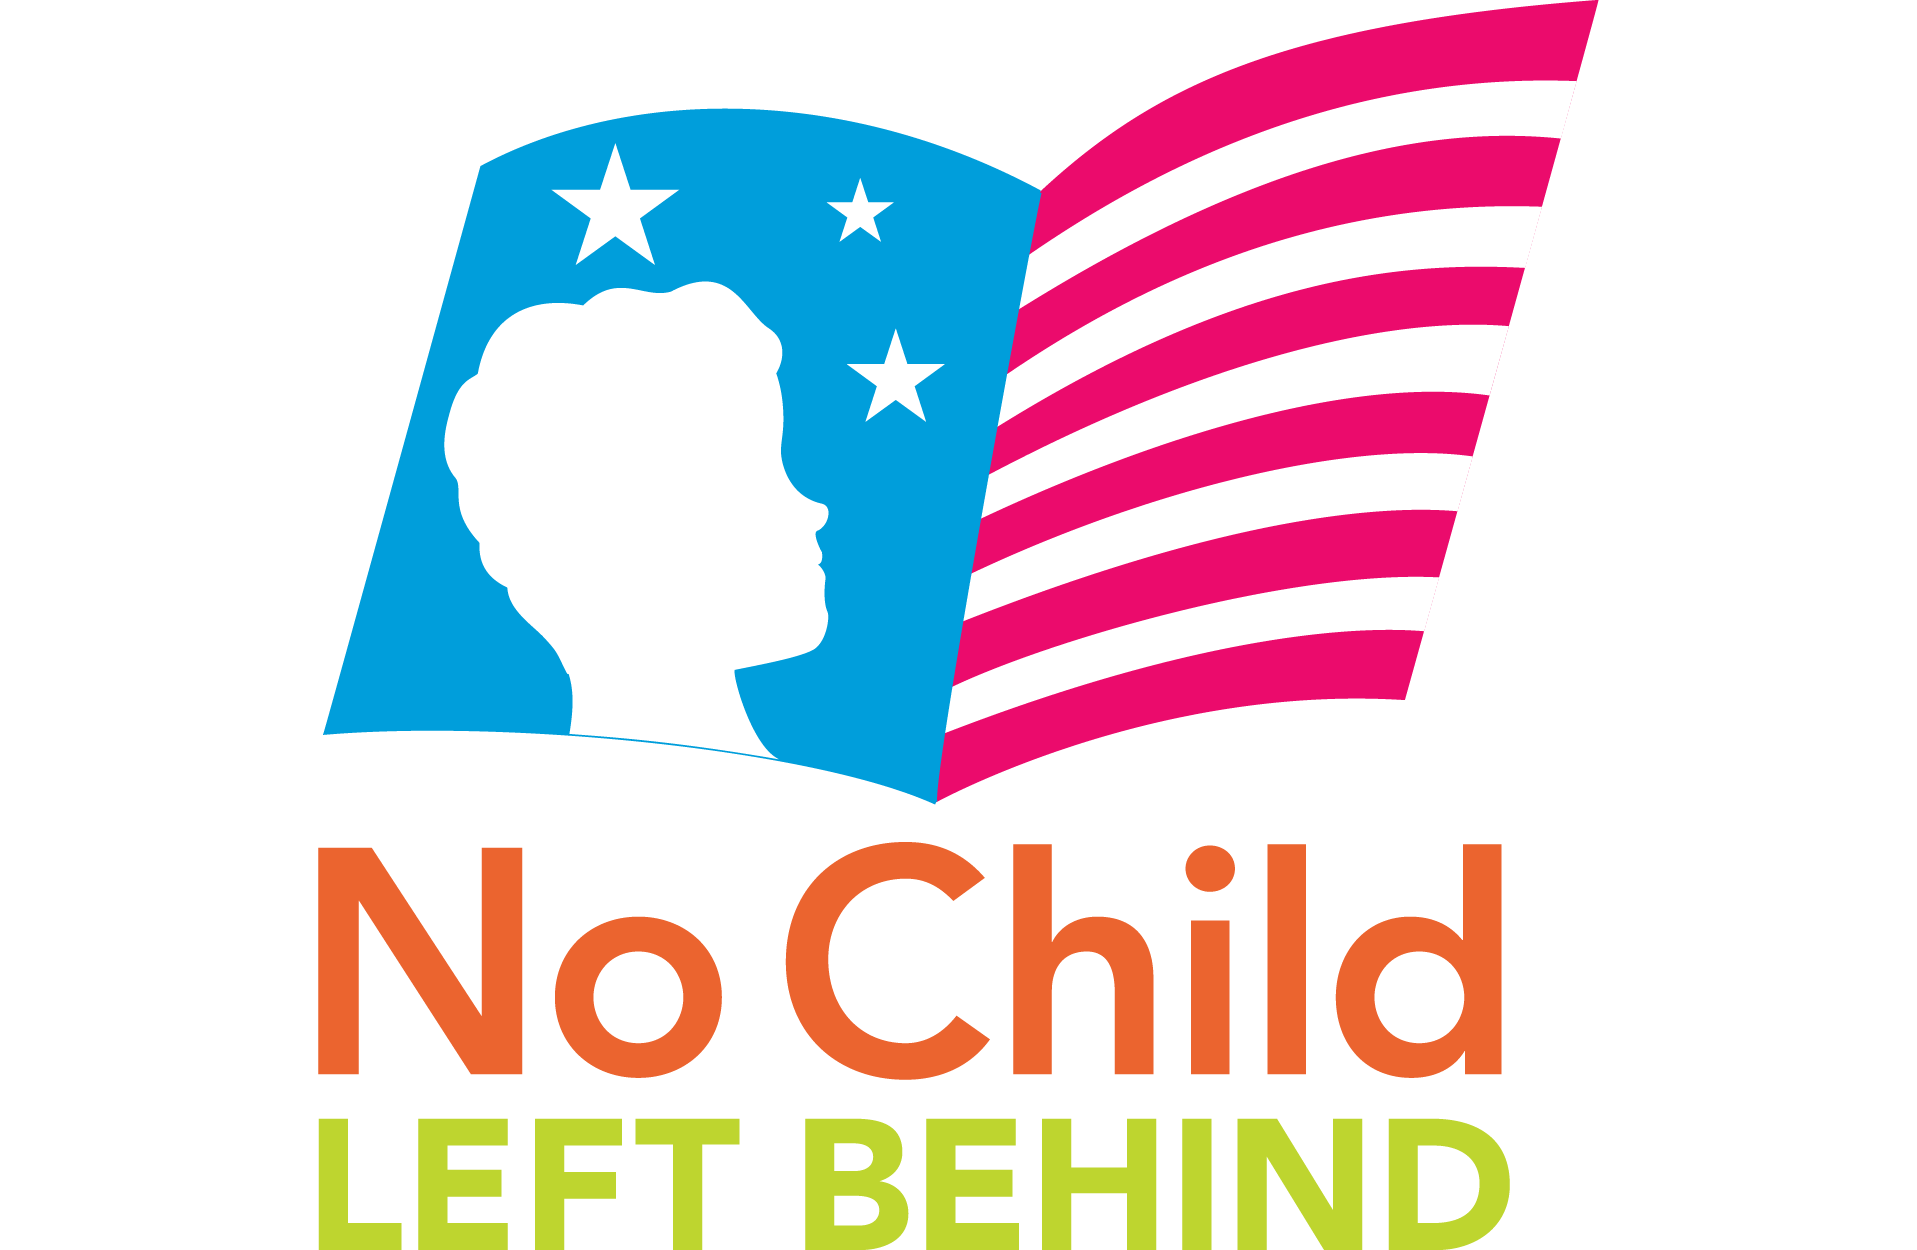 The Latest on the New Version of No Child Left Behind | Edmentum Blog